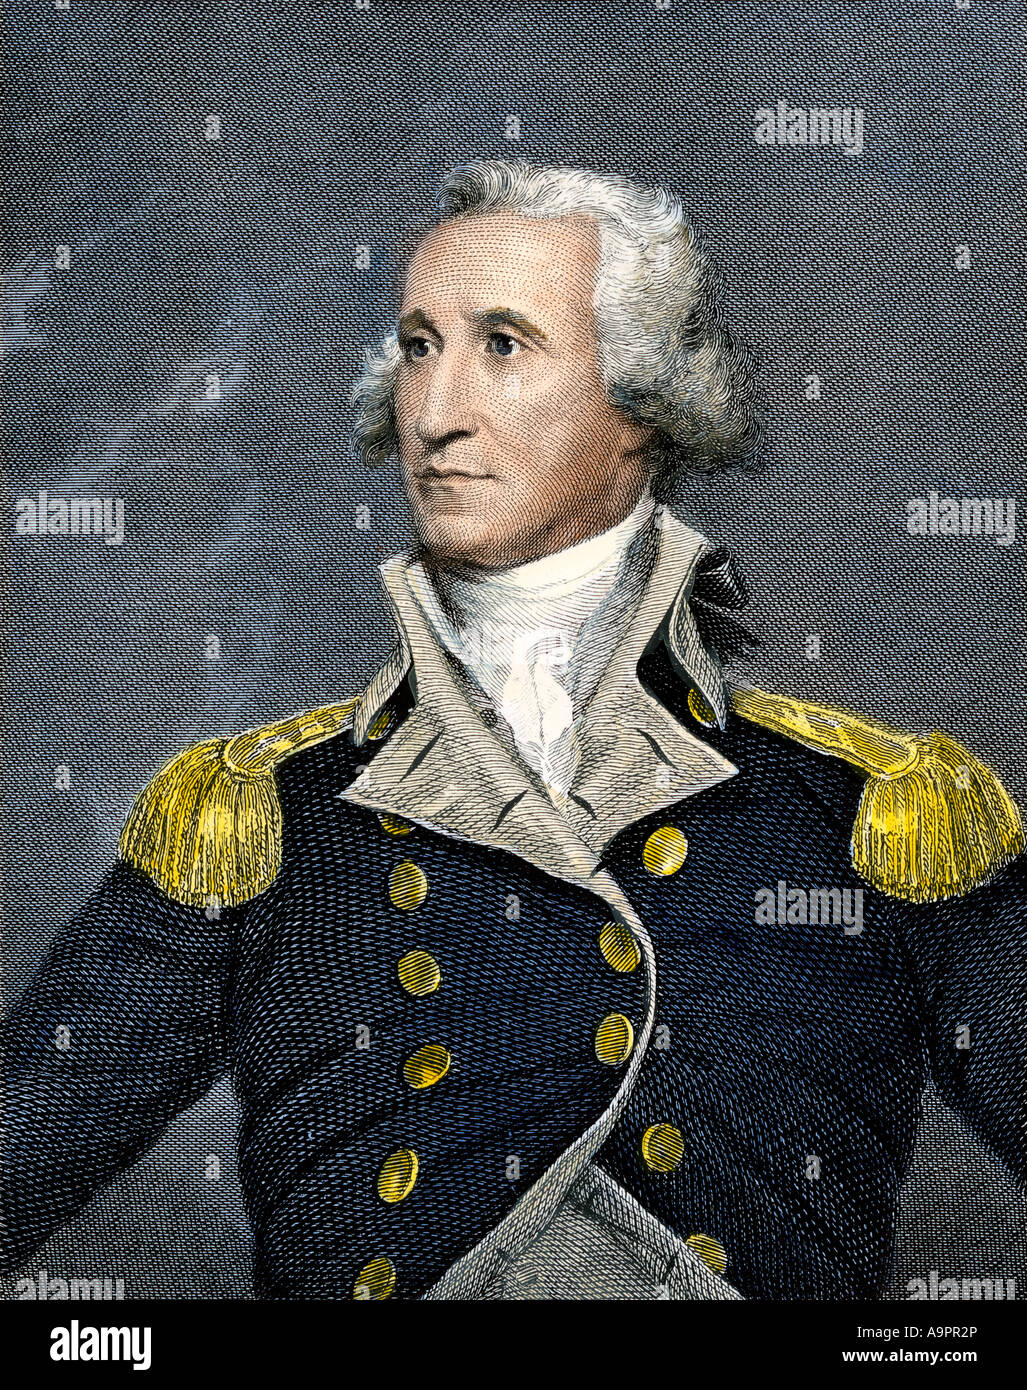 General George Washington. Hand-colored steel engraving - Stock Image